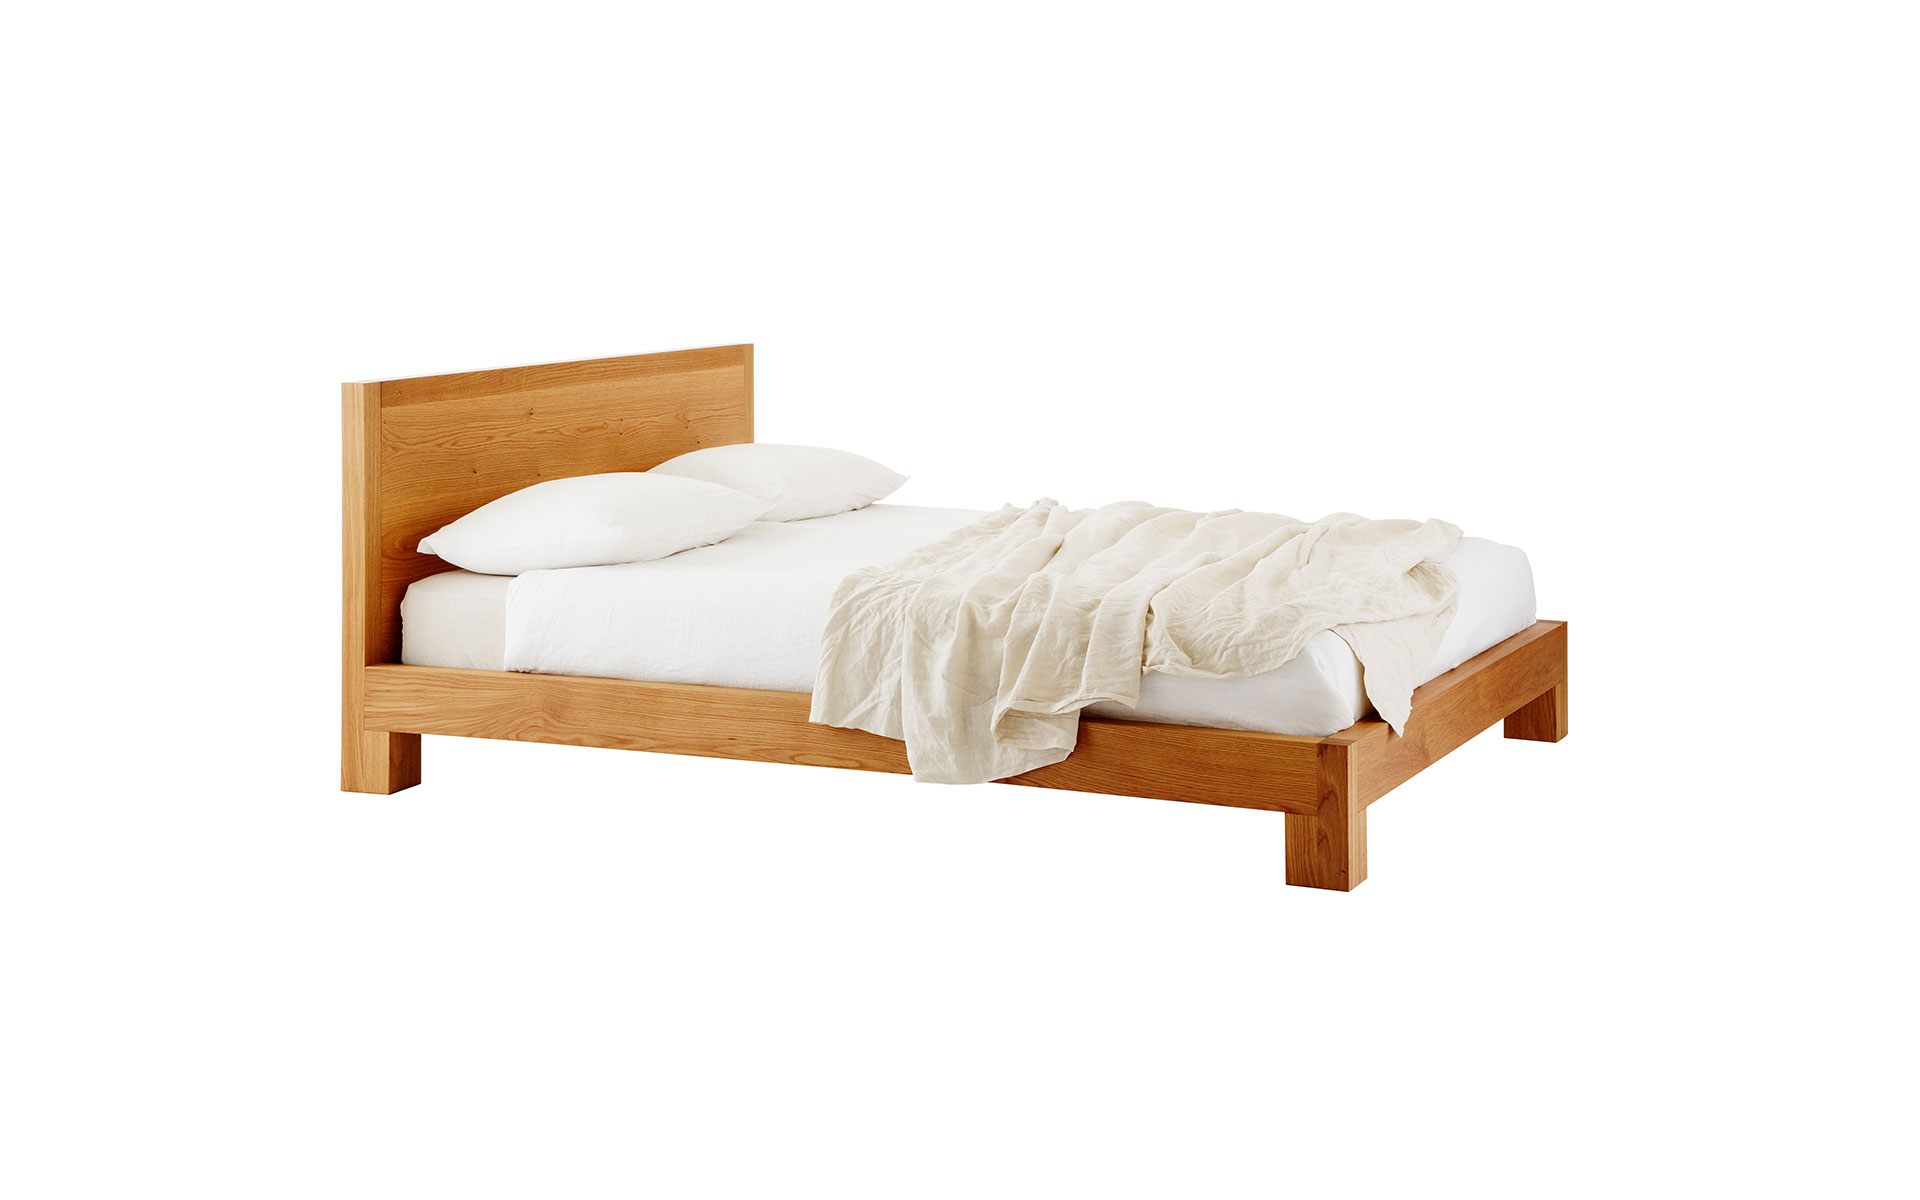 Simple Bed Simple Bed Mark Tuckey